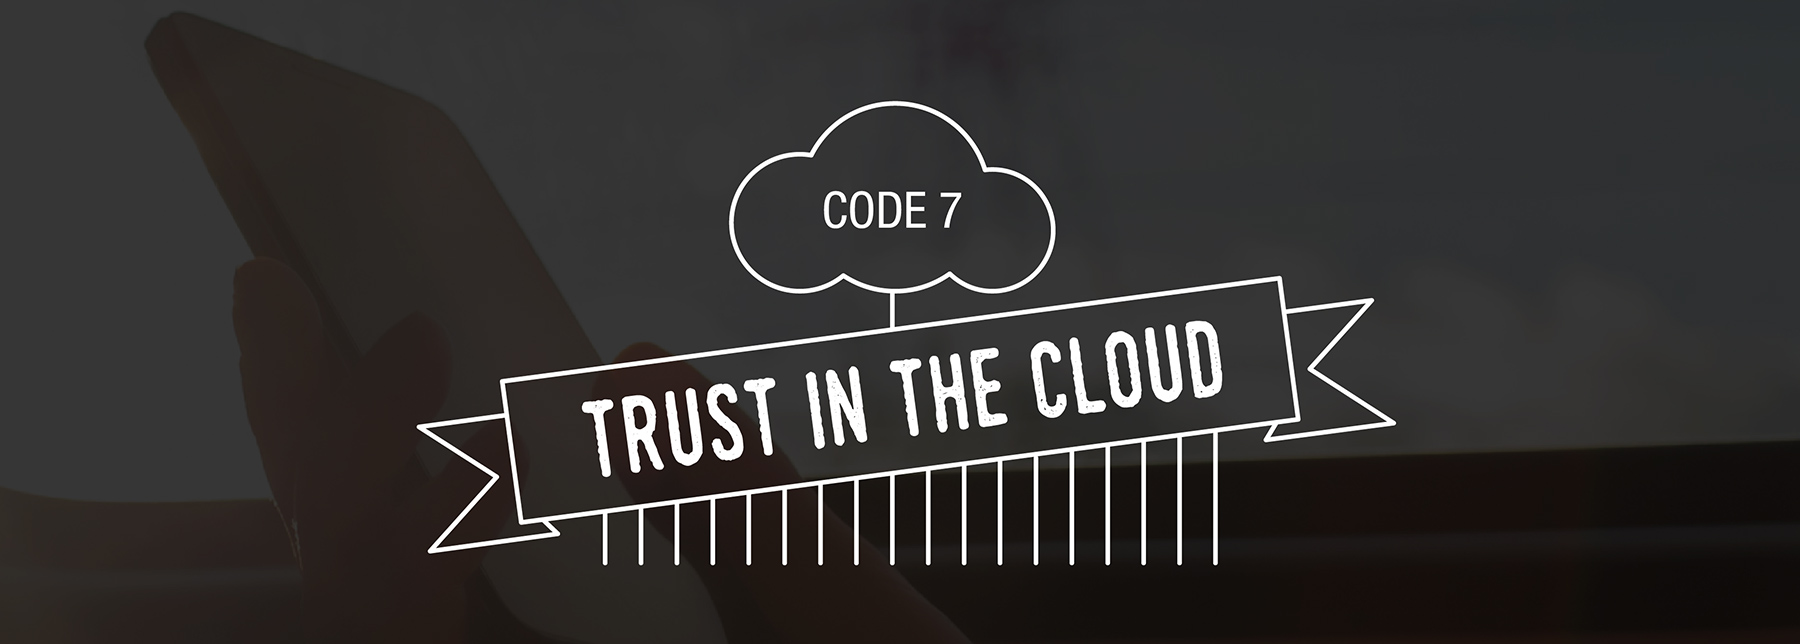 Code 7: Trust in the cloud.